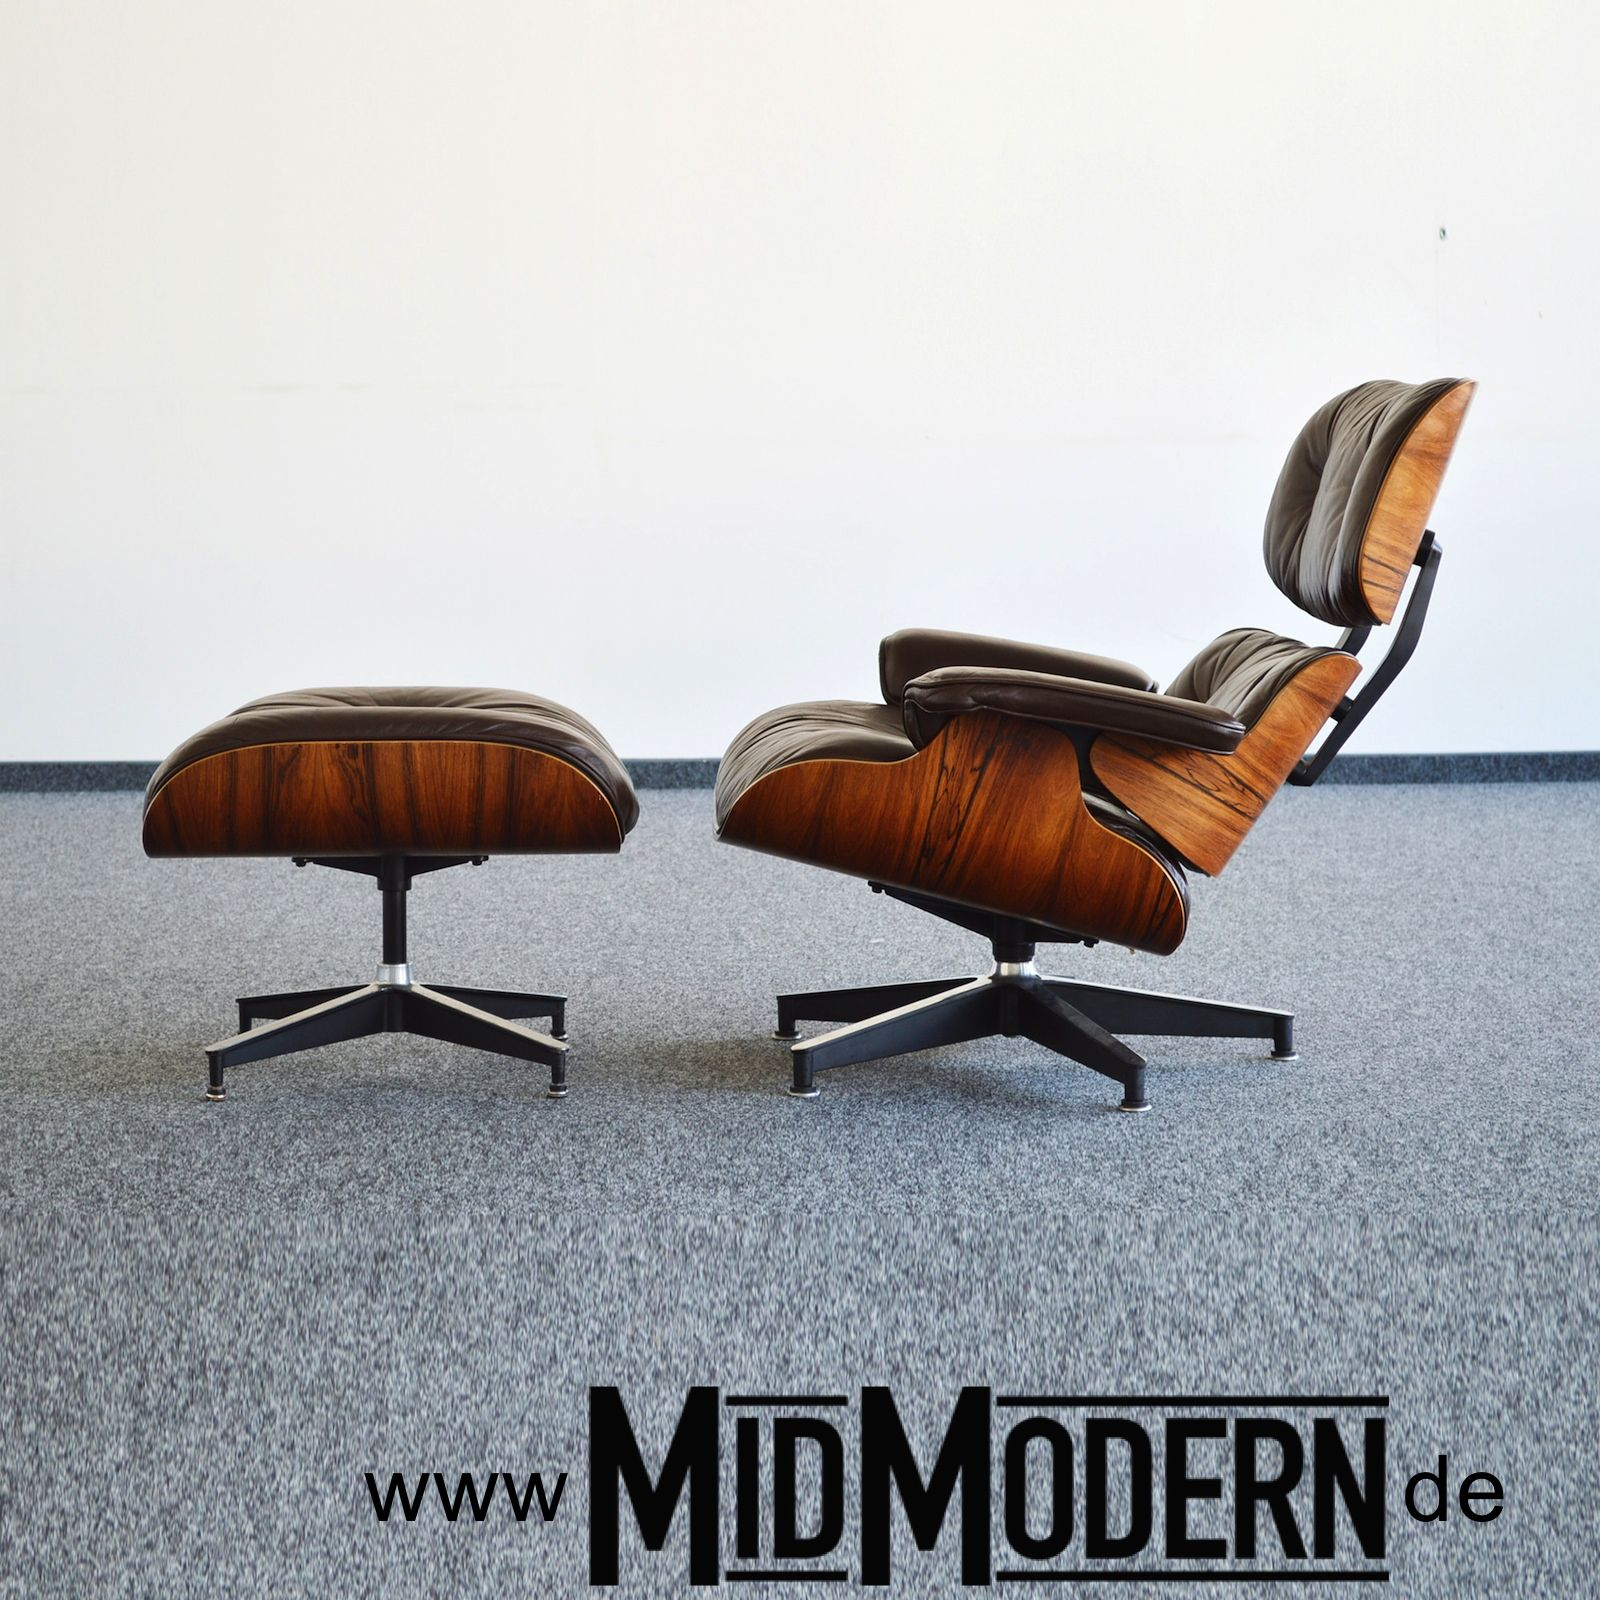 Eames Lounge Chair & Ottoman by Herman Miller, 1978